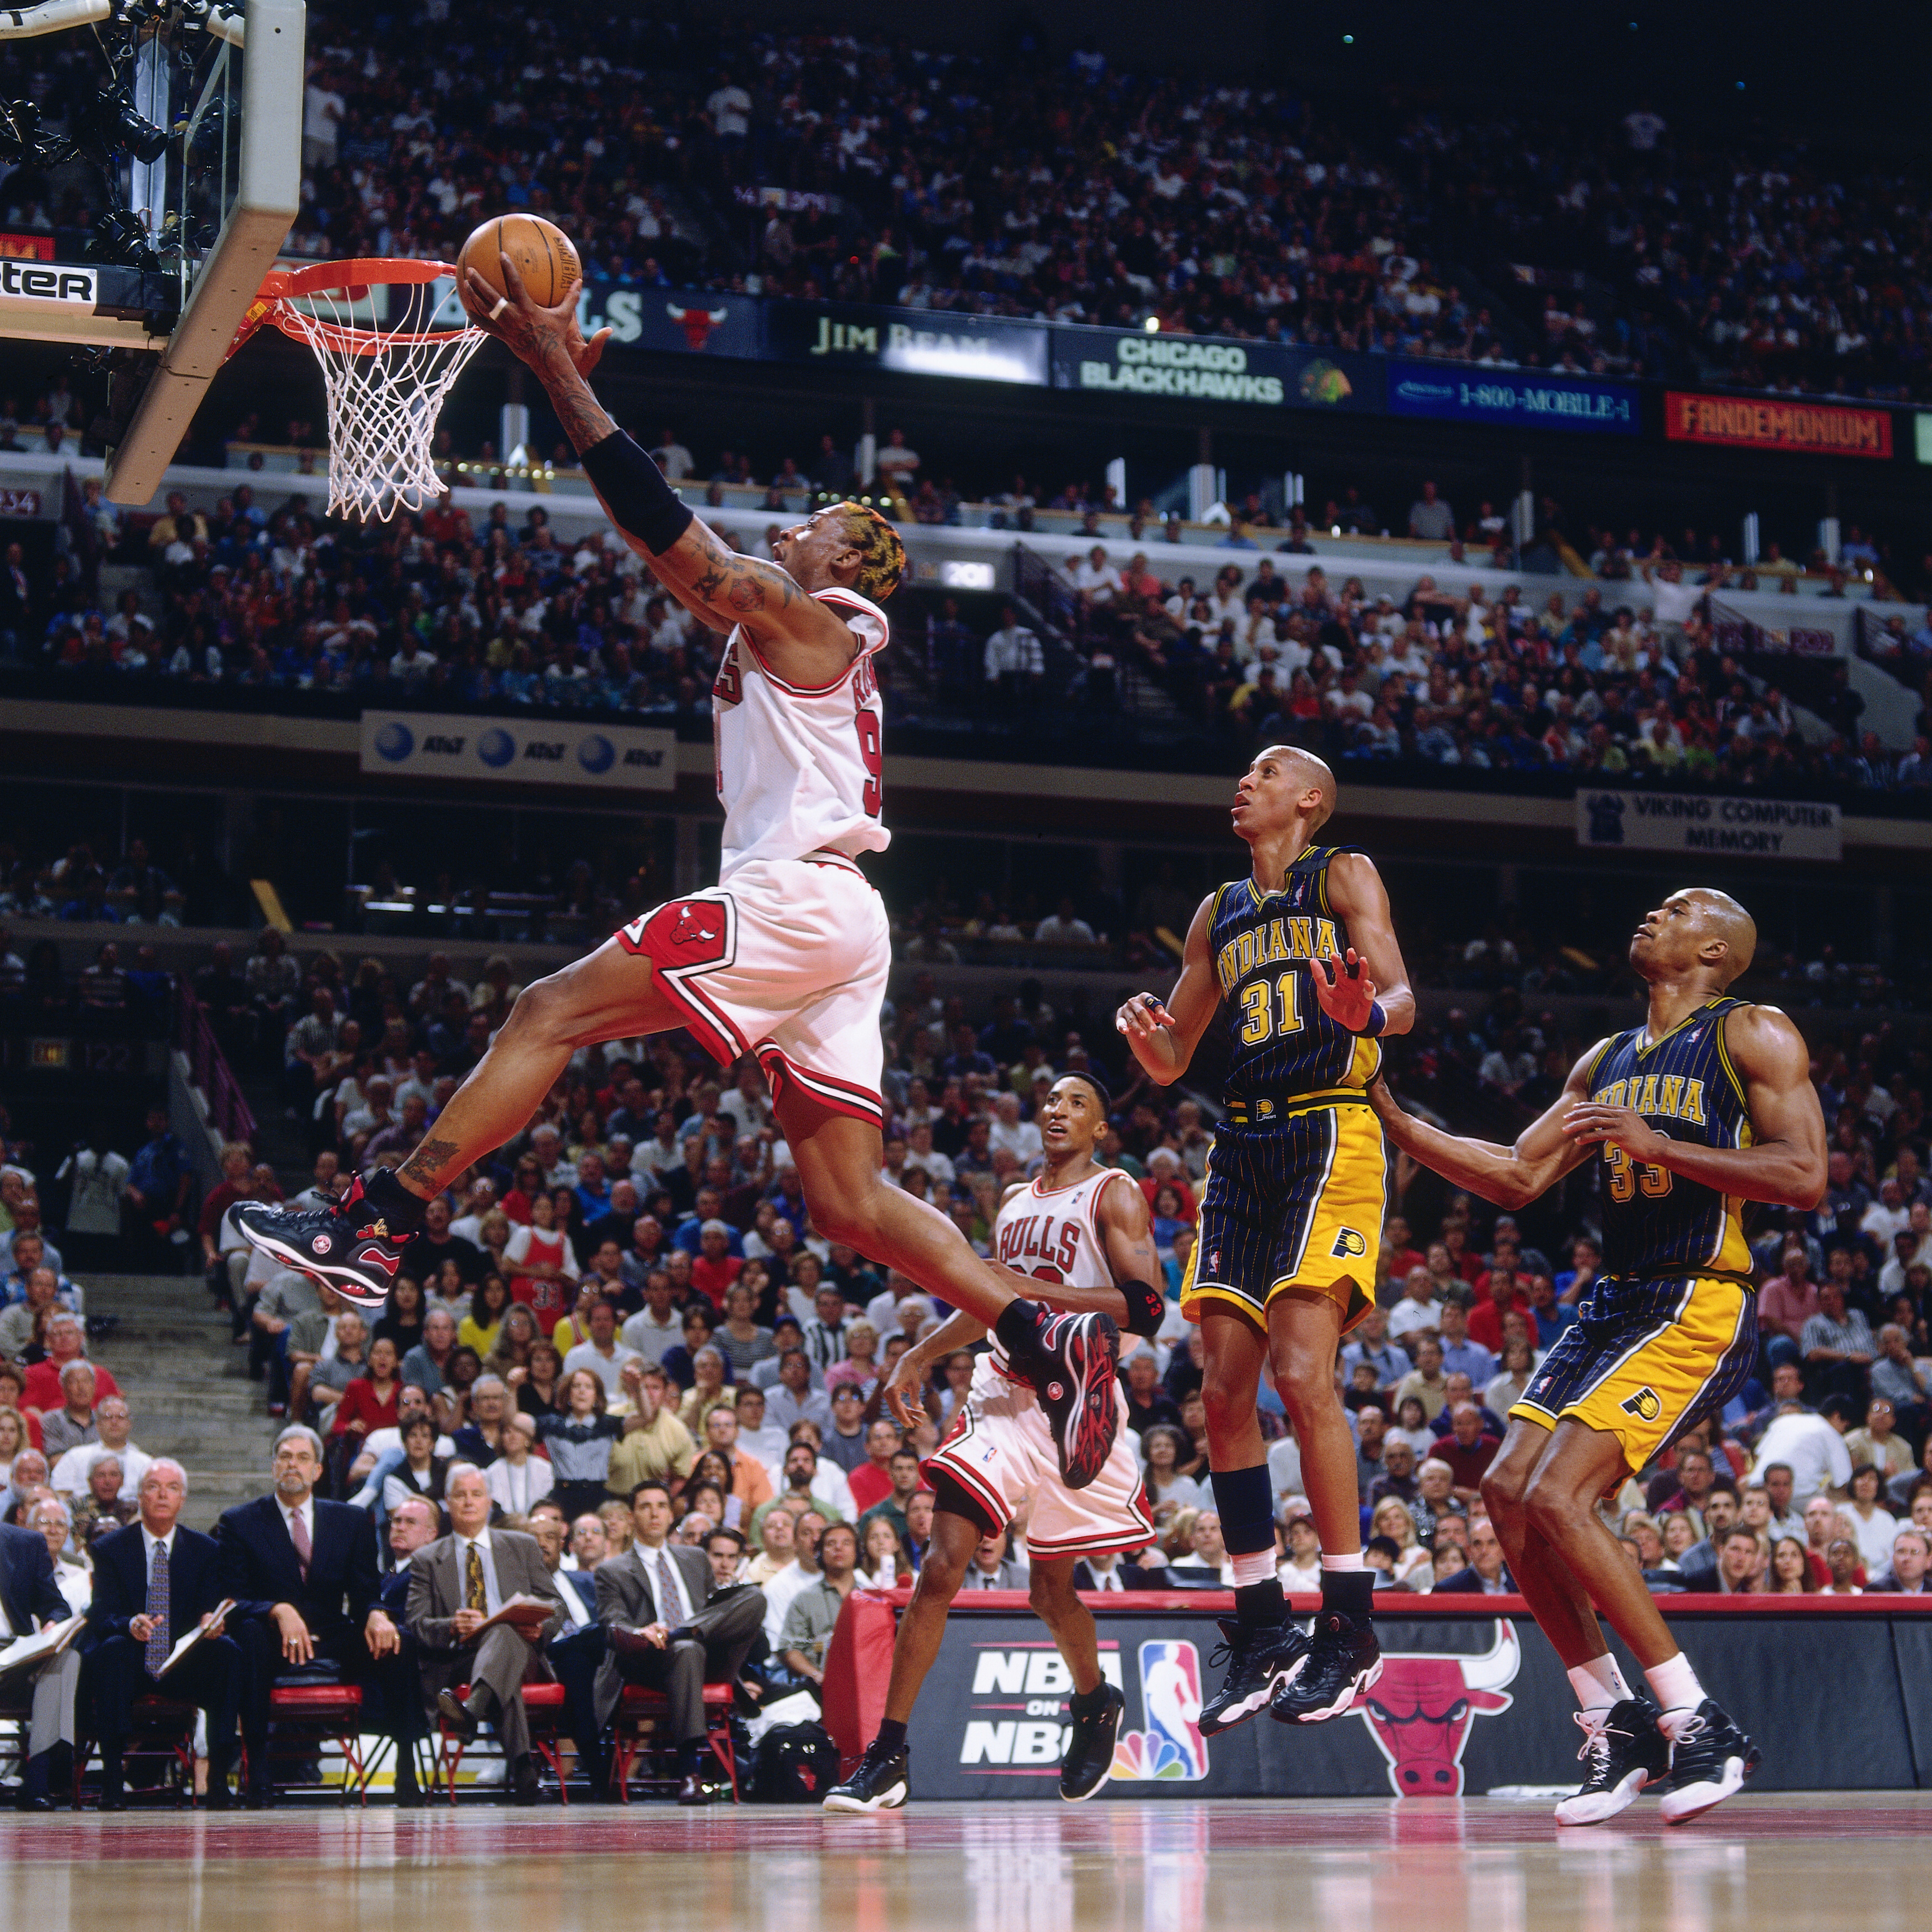 Dennis Rodman hits a layup against the Pacers.